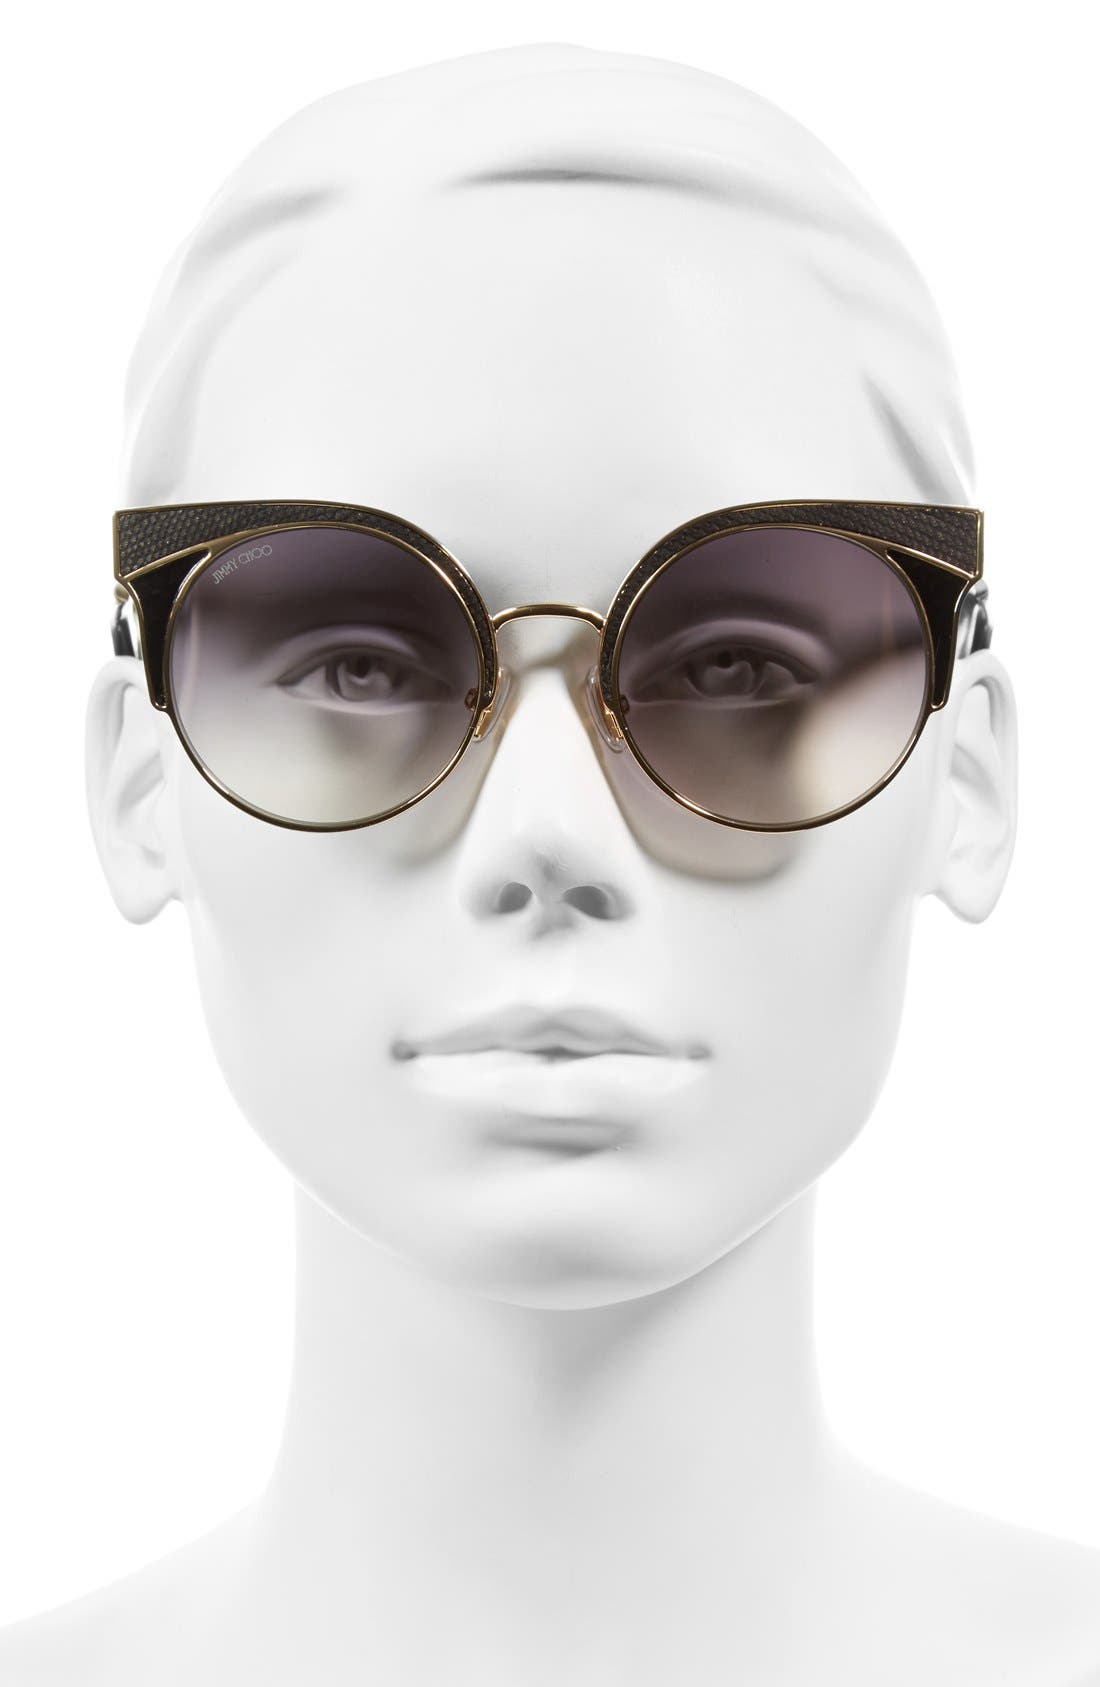 JIMMY CHOO,                             'Ora' 51mm Cat Eye Sunglasses,                             Alternate thumbnail 2, color,                             710